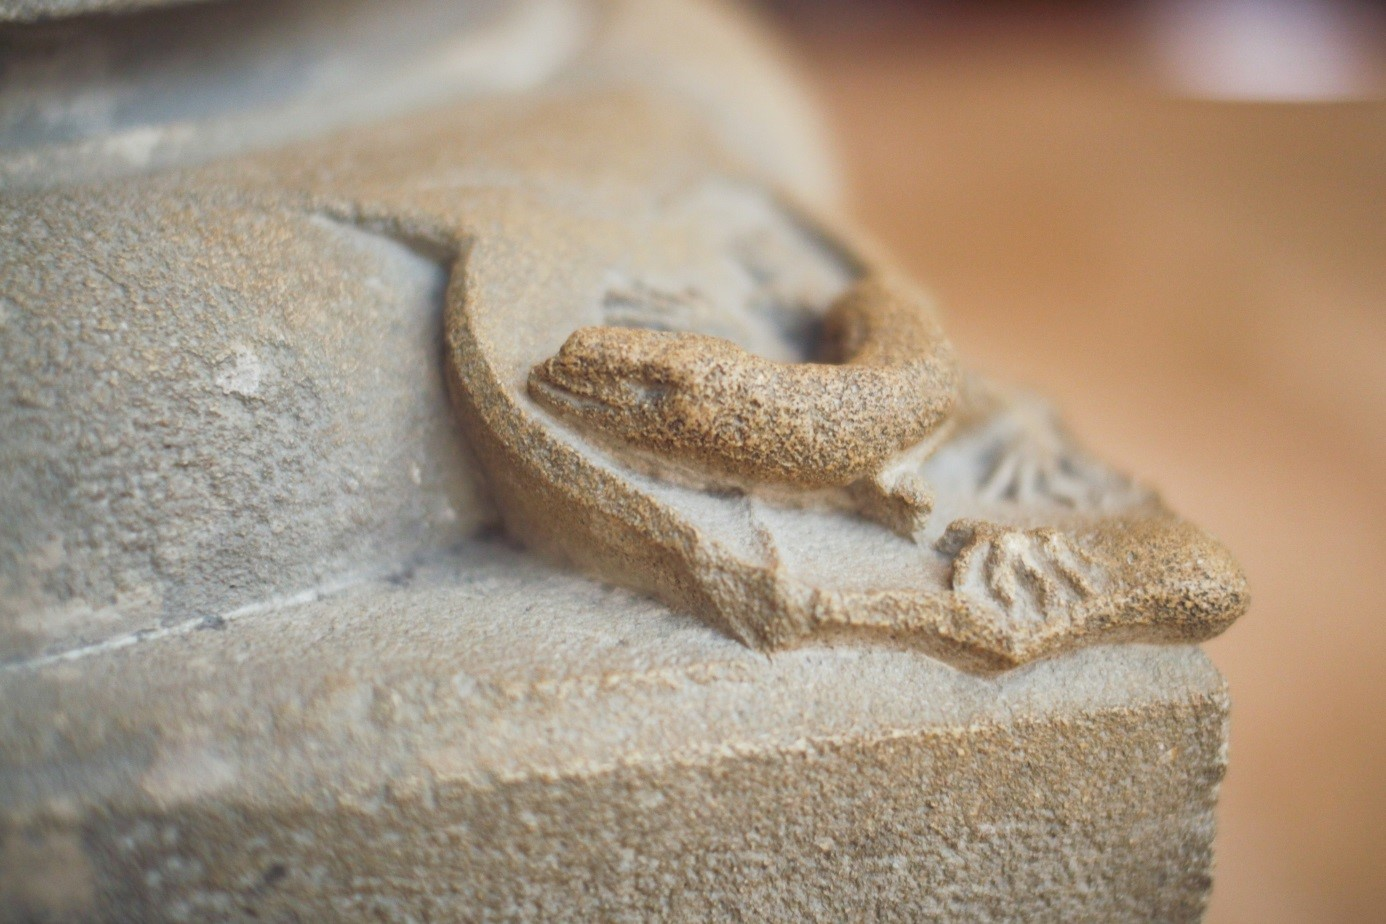 Romanesque lizard sculpture